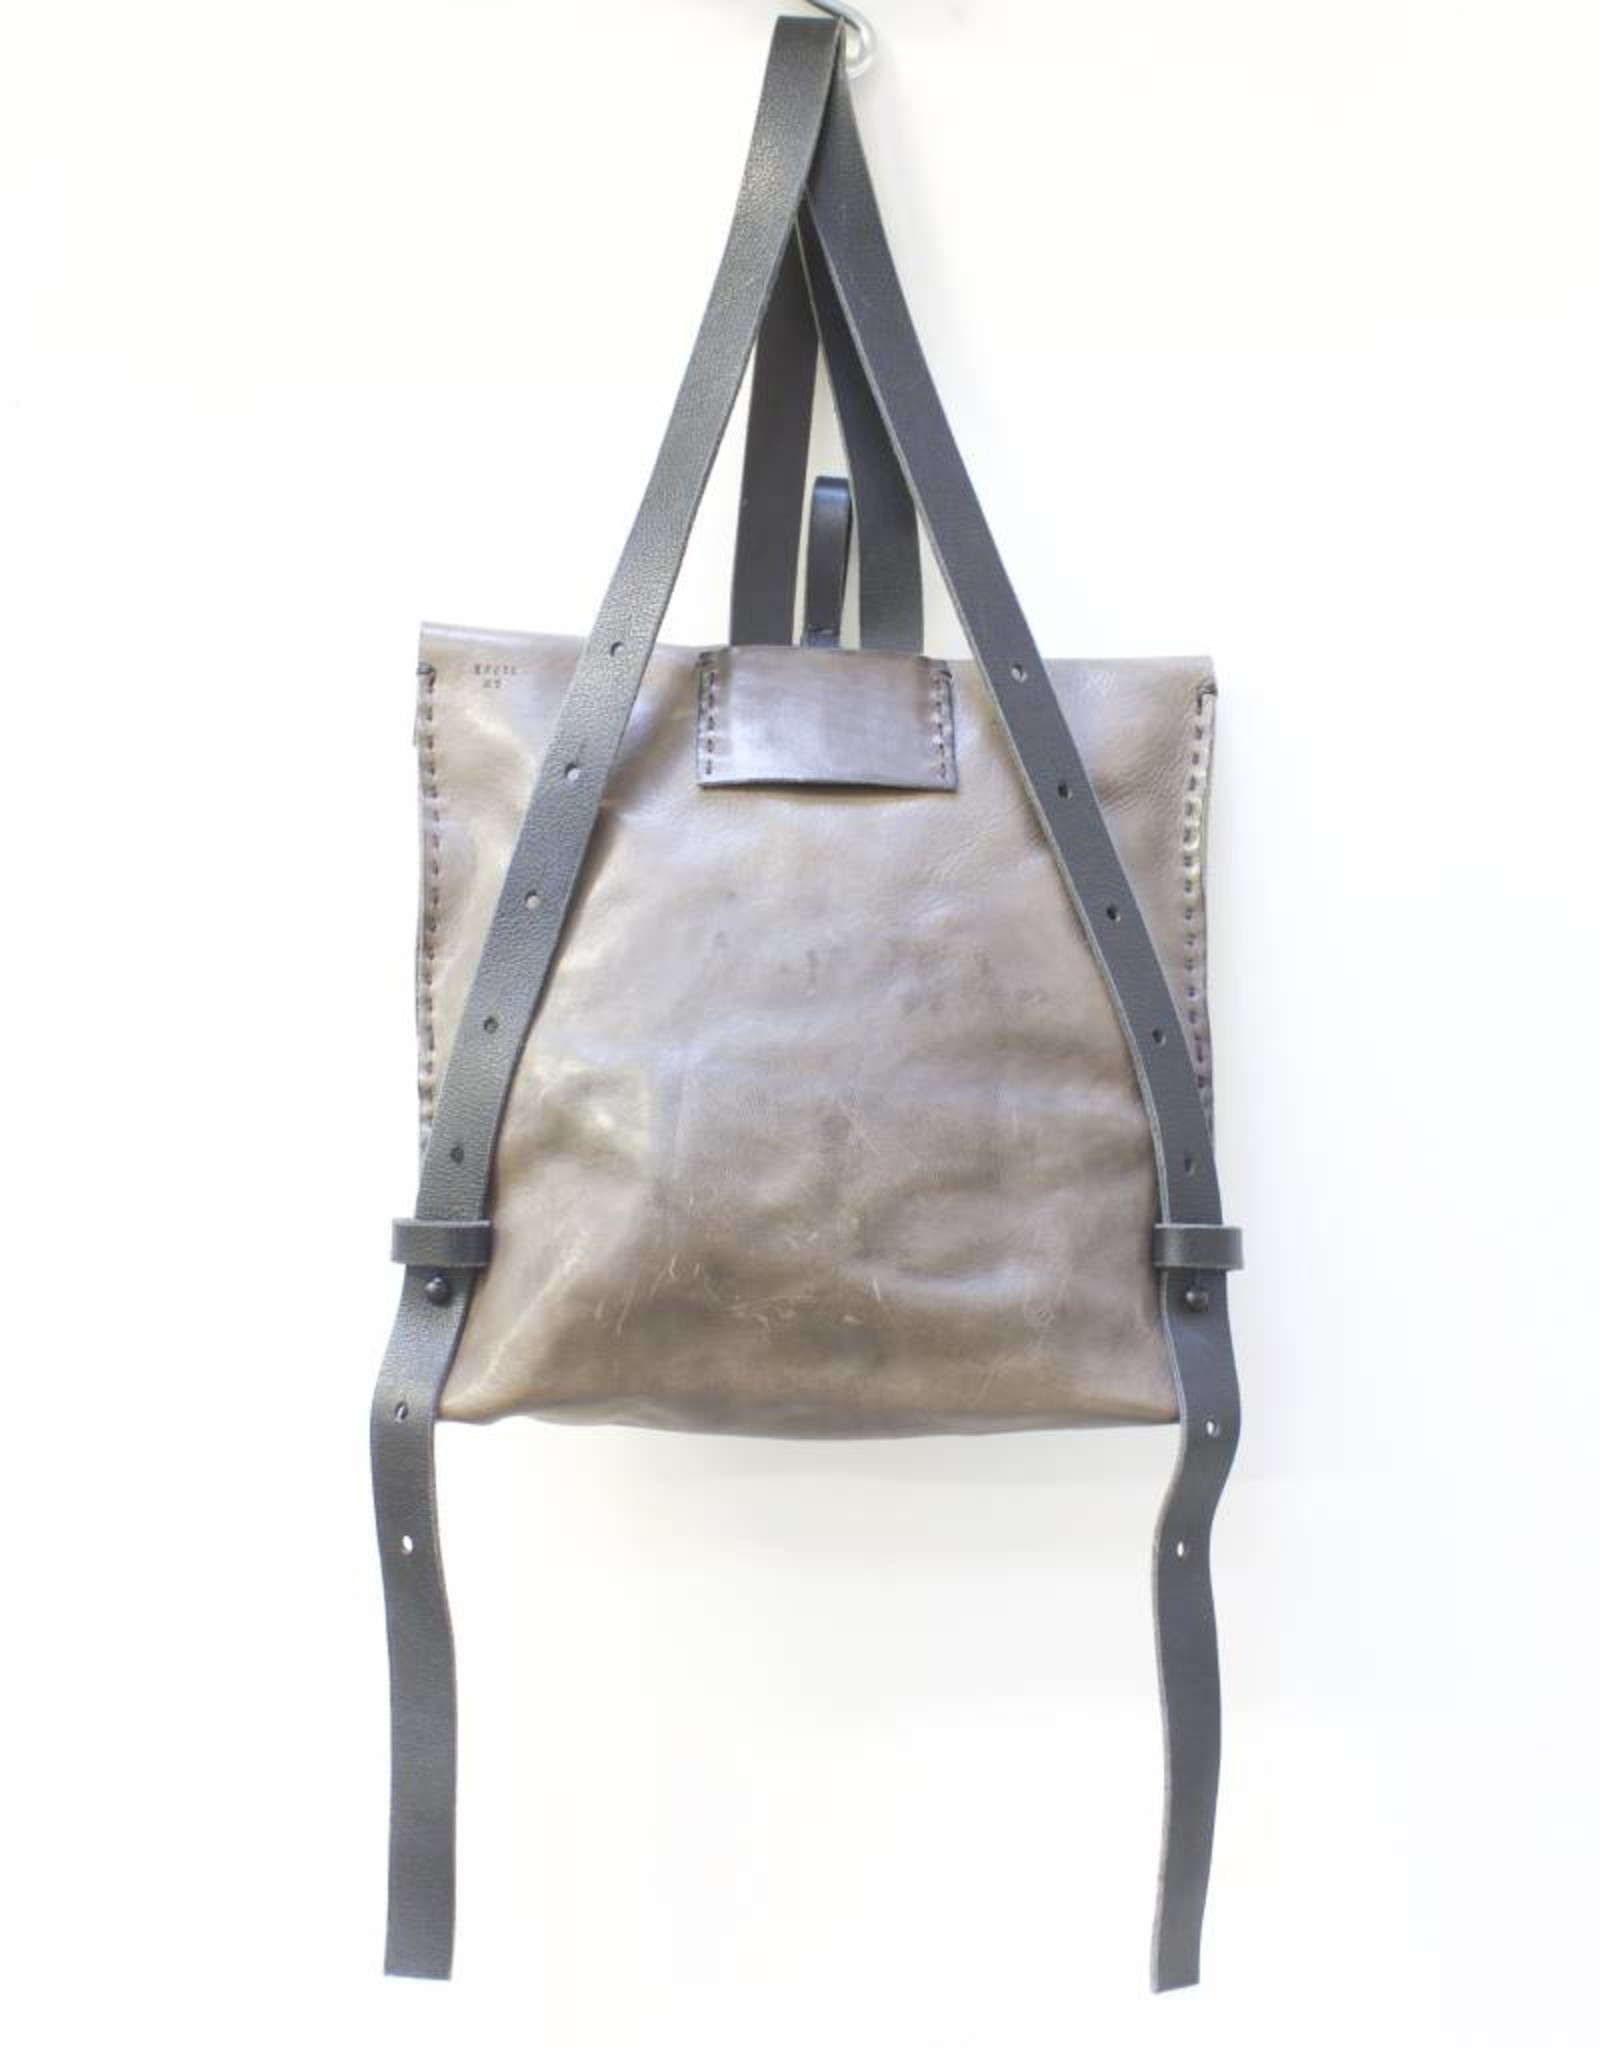 Engso Hand Crafted Convertible Leather Bag - Grey & Taupe